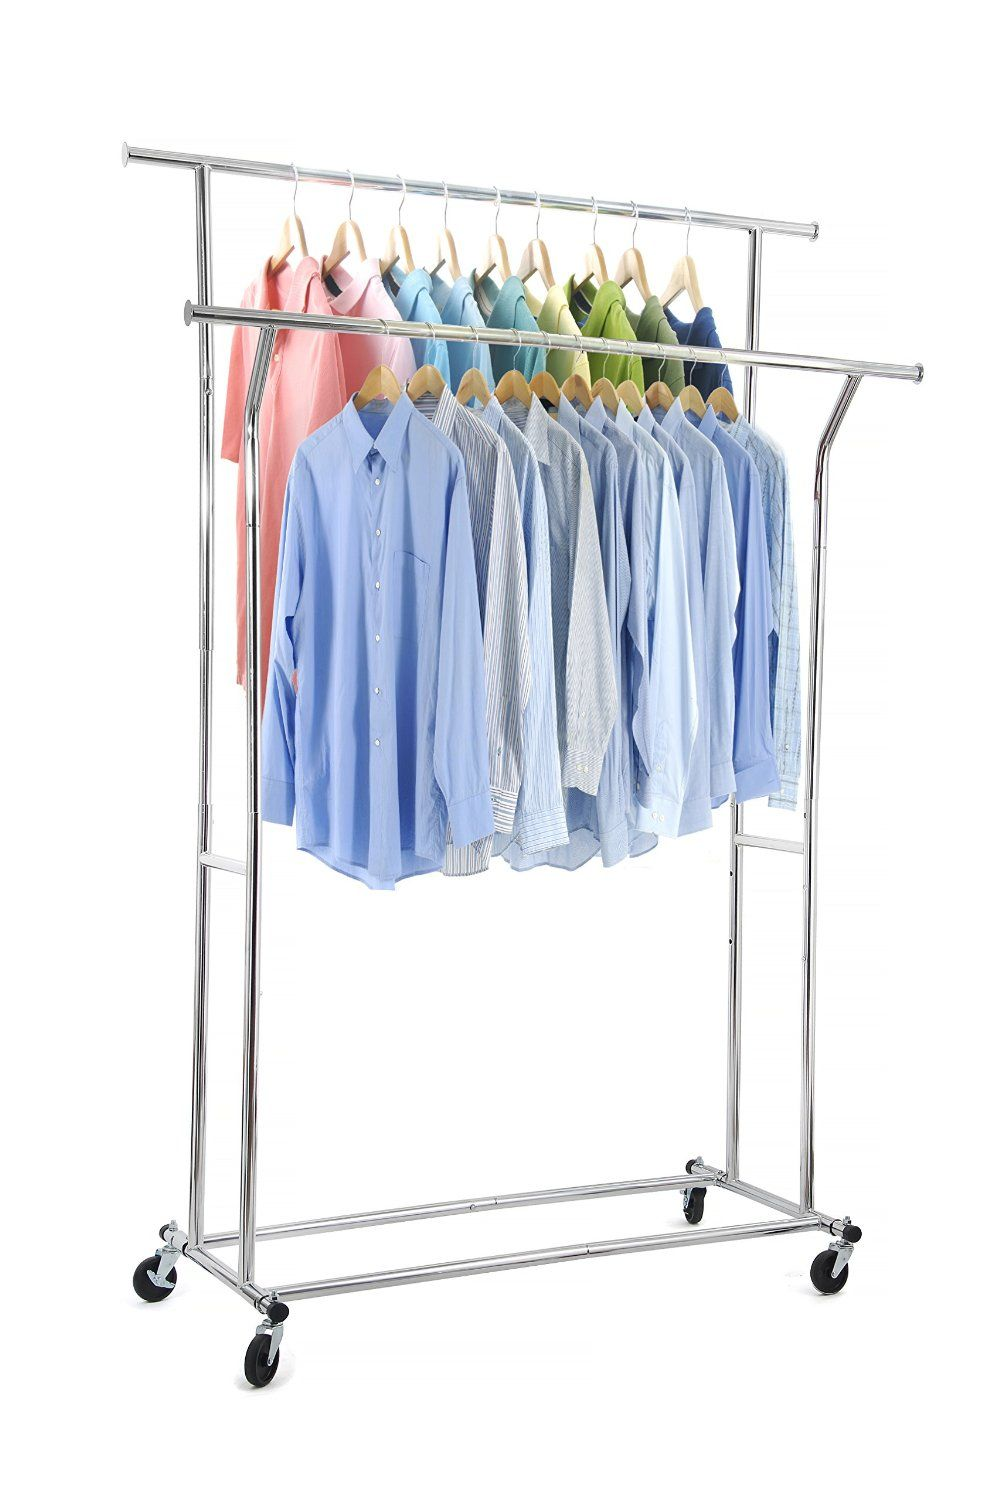 Keep Your Laundry Neat With This Adjustable Garment Rack